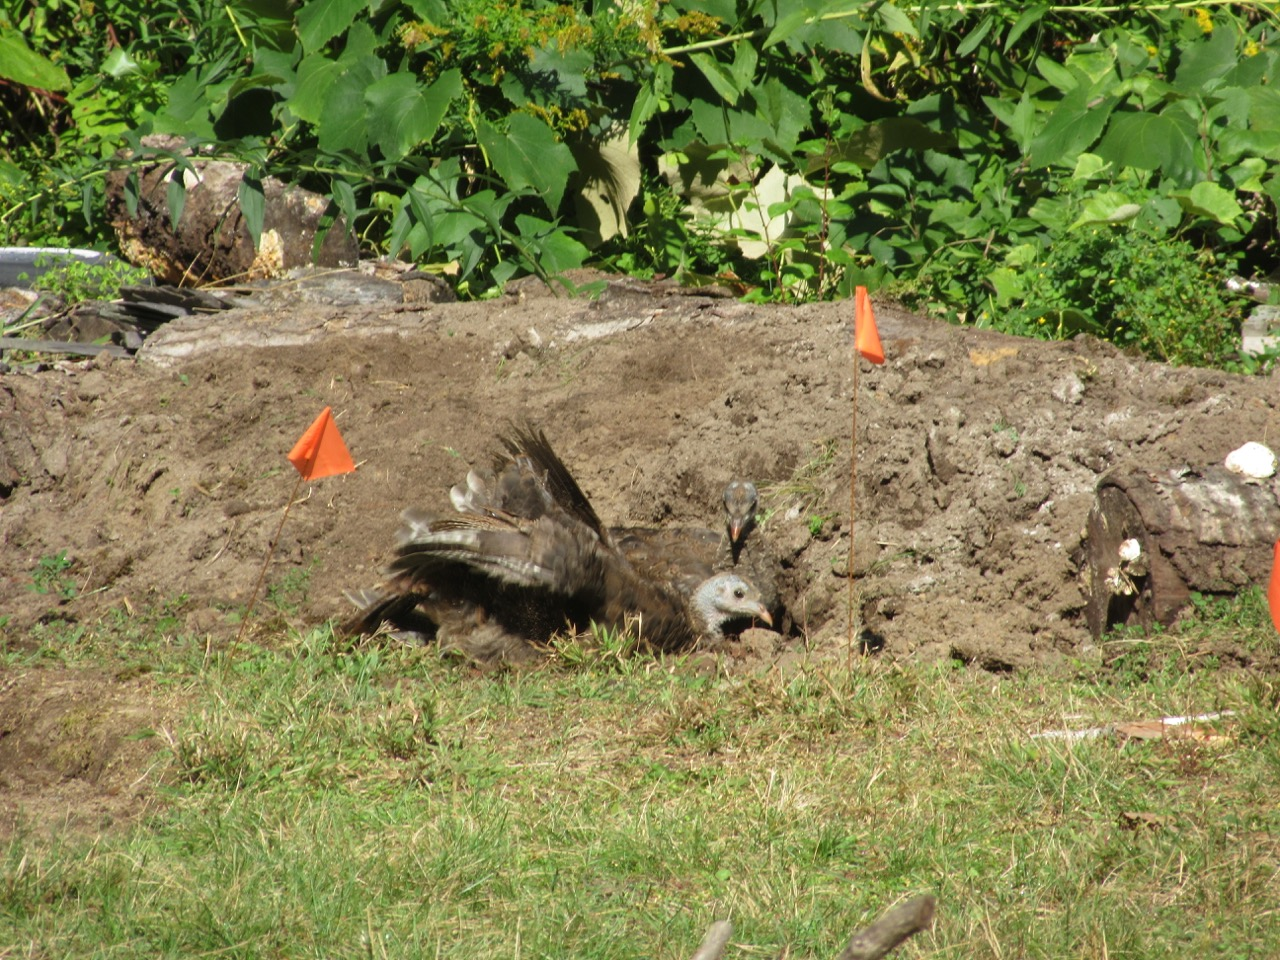 Turkeys in dirt